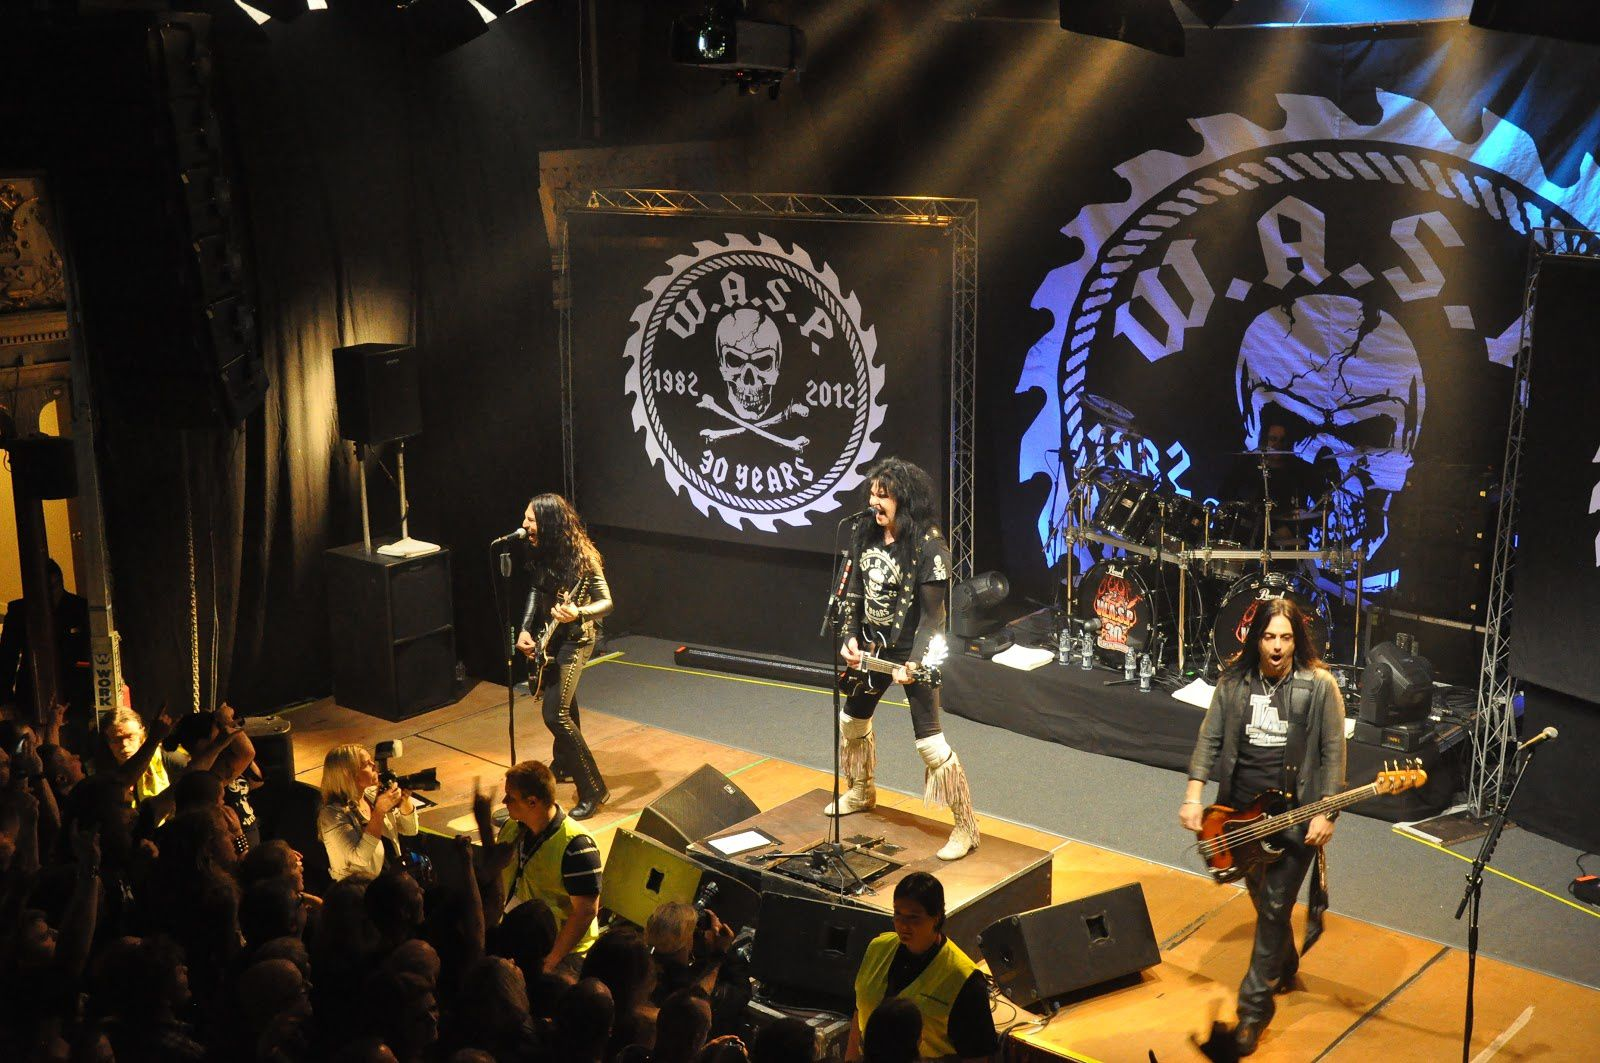 Blackie Lawless, Doug Blair, Mike Dupke, Mike Duda - W.A.S.P. Sundsvall, Sweden (2012)